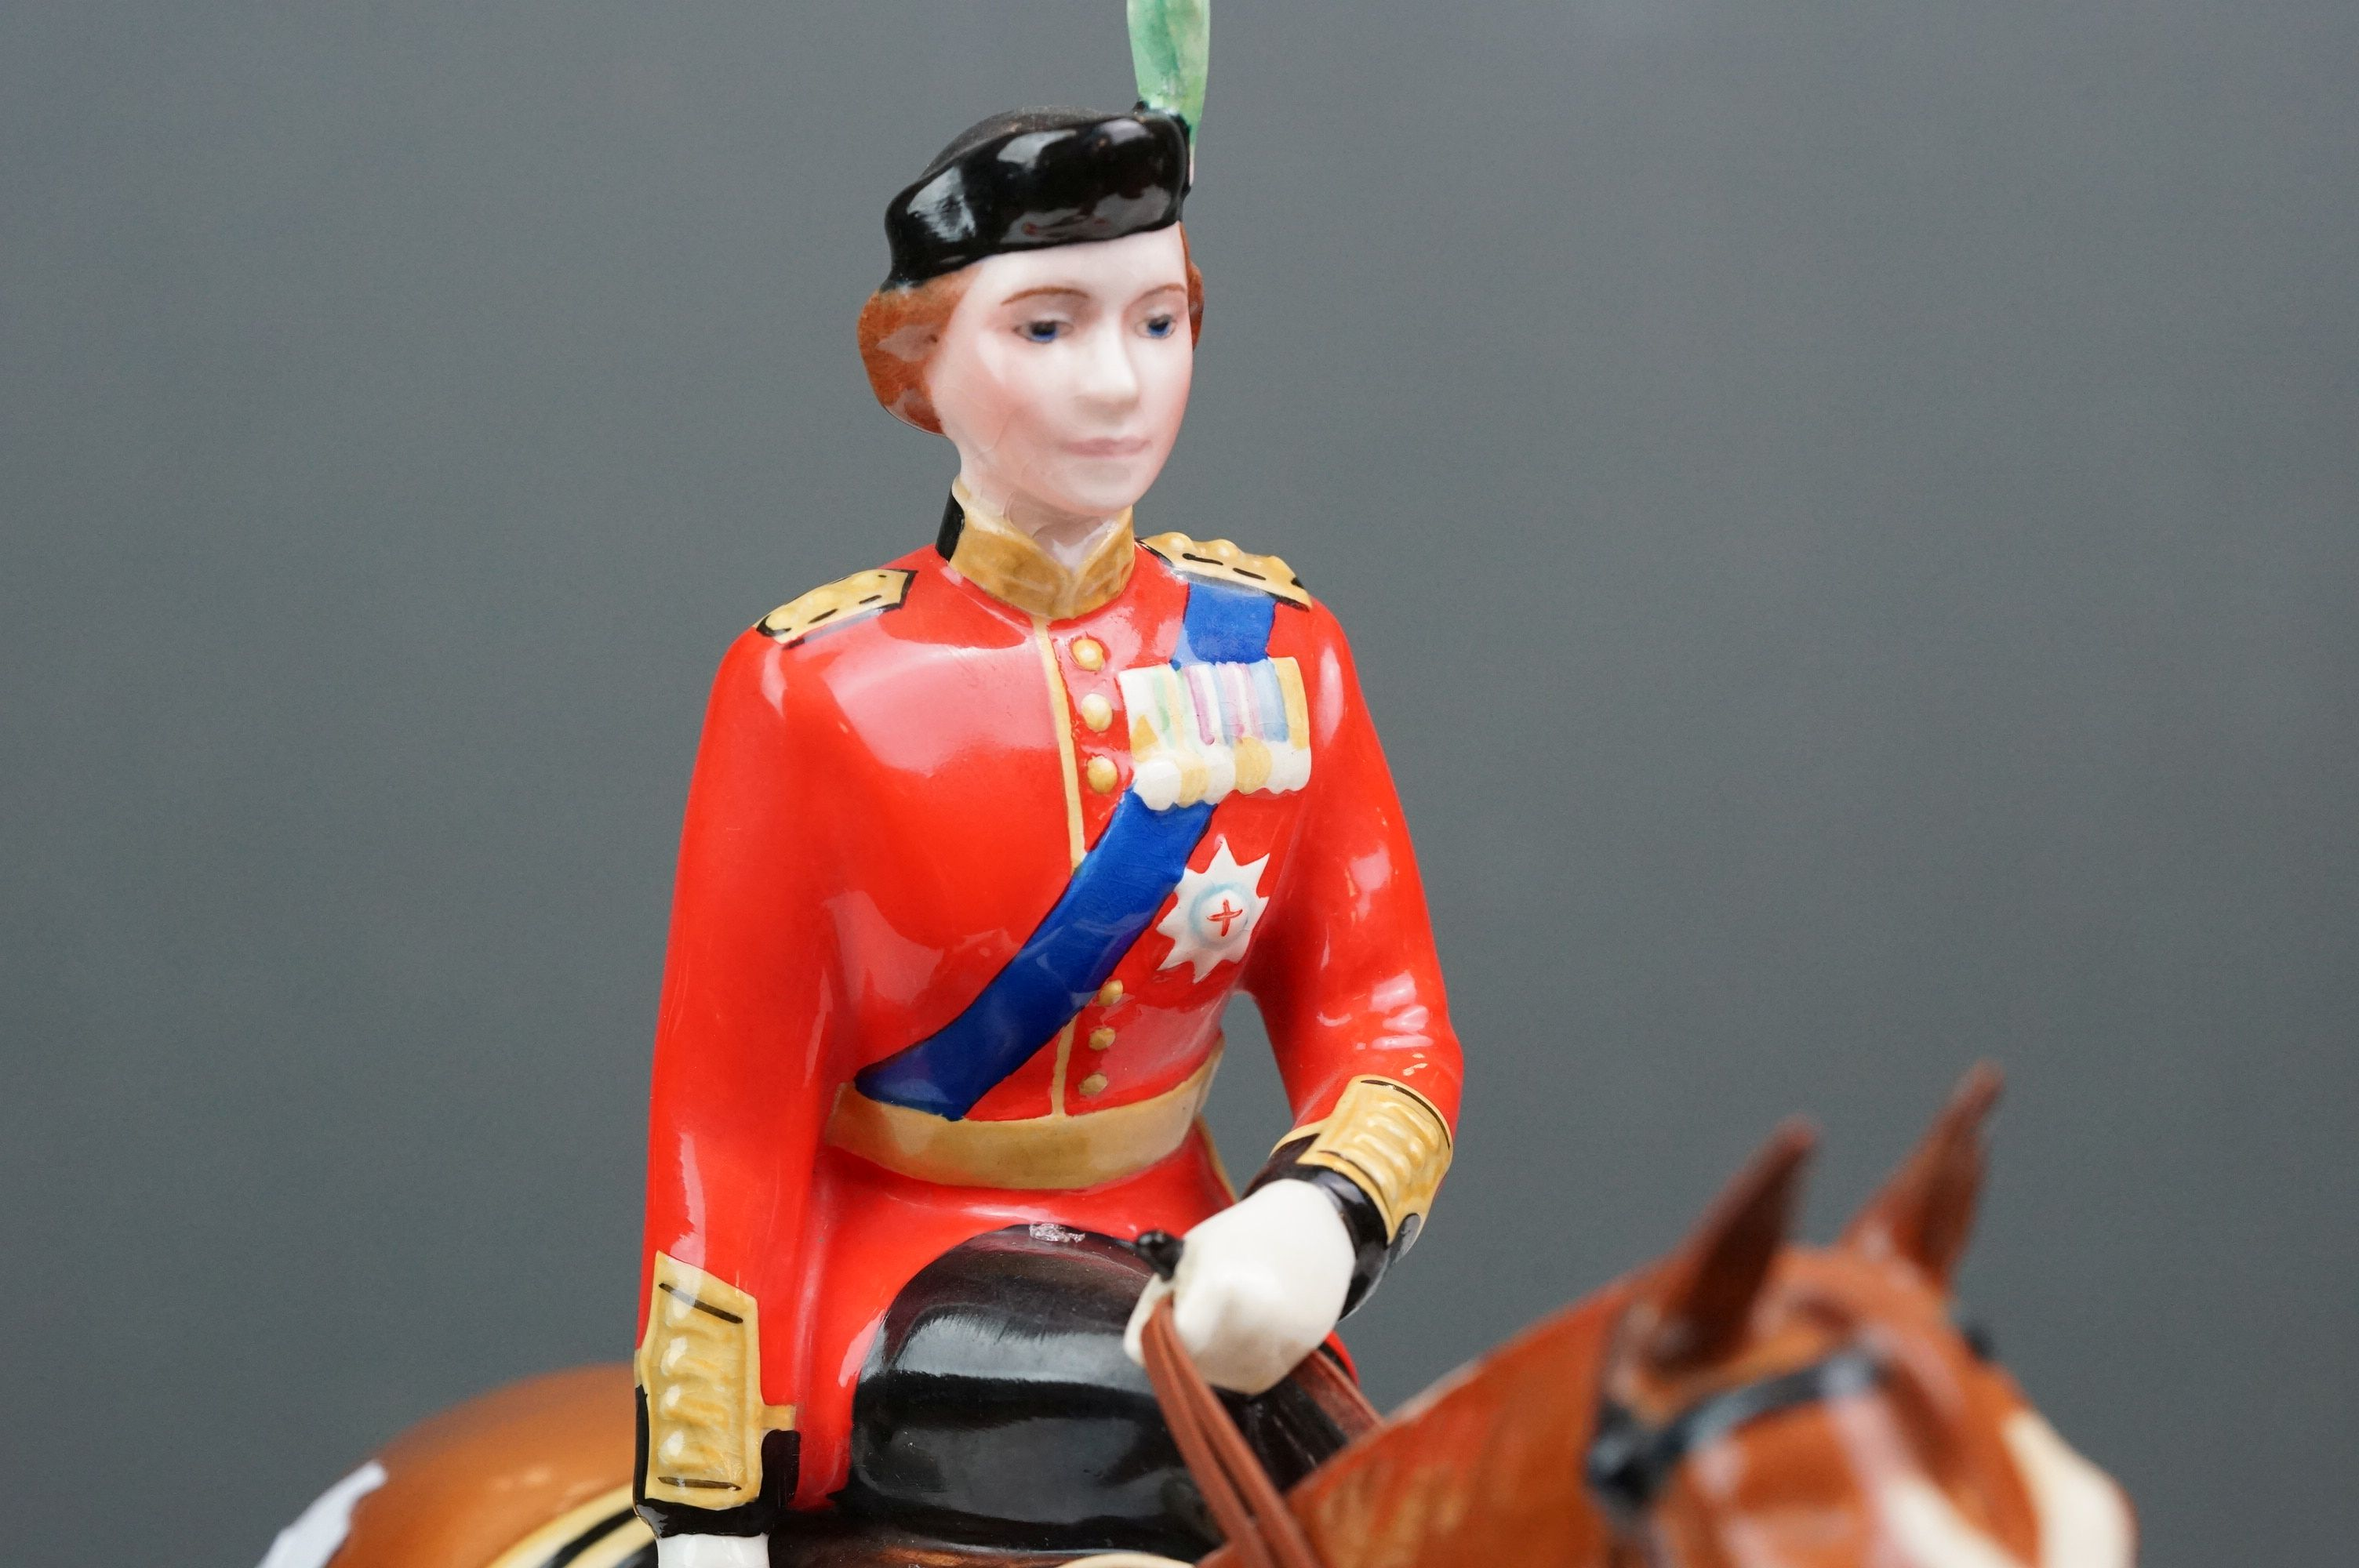 Beswick HM Queen Elizabeth II mounted on Imperial, Trooping the Colour 1957, model no. 1546 H26.5cm - Image 7 of 8